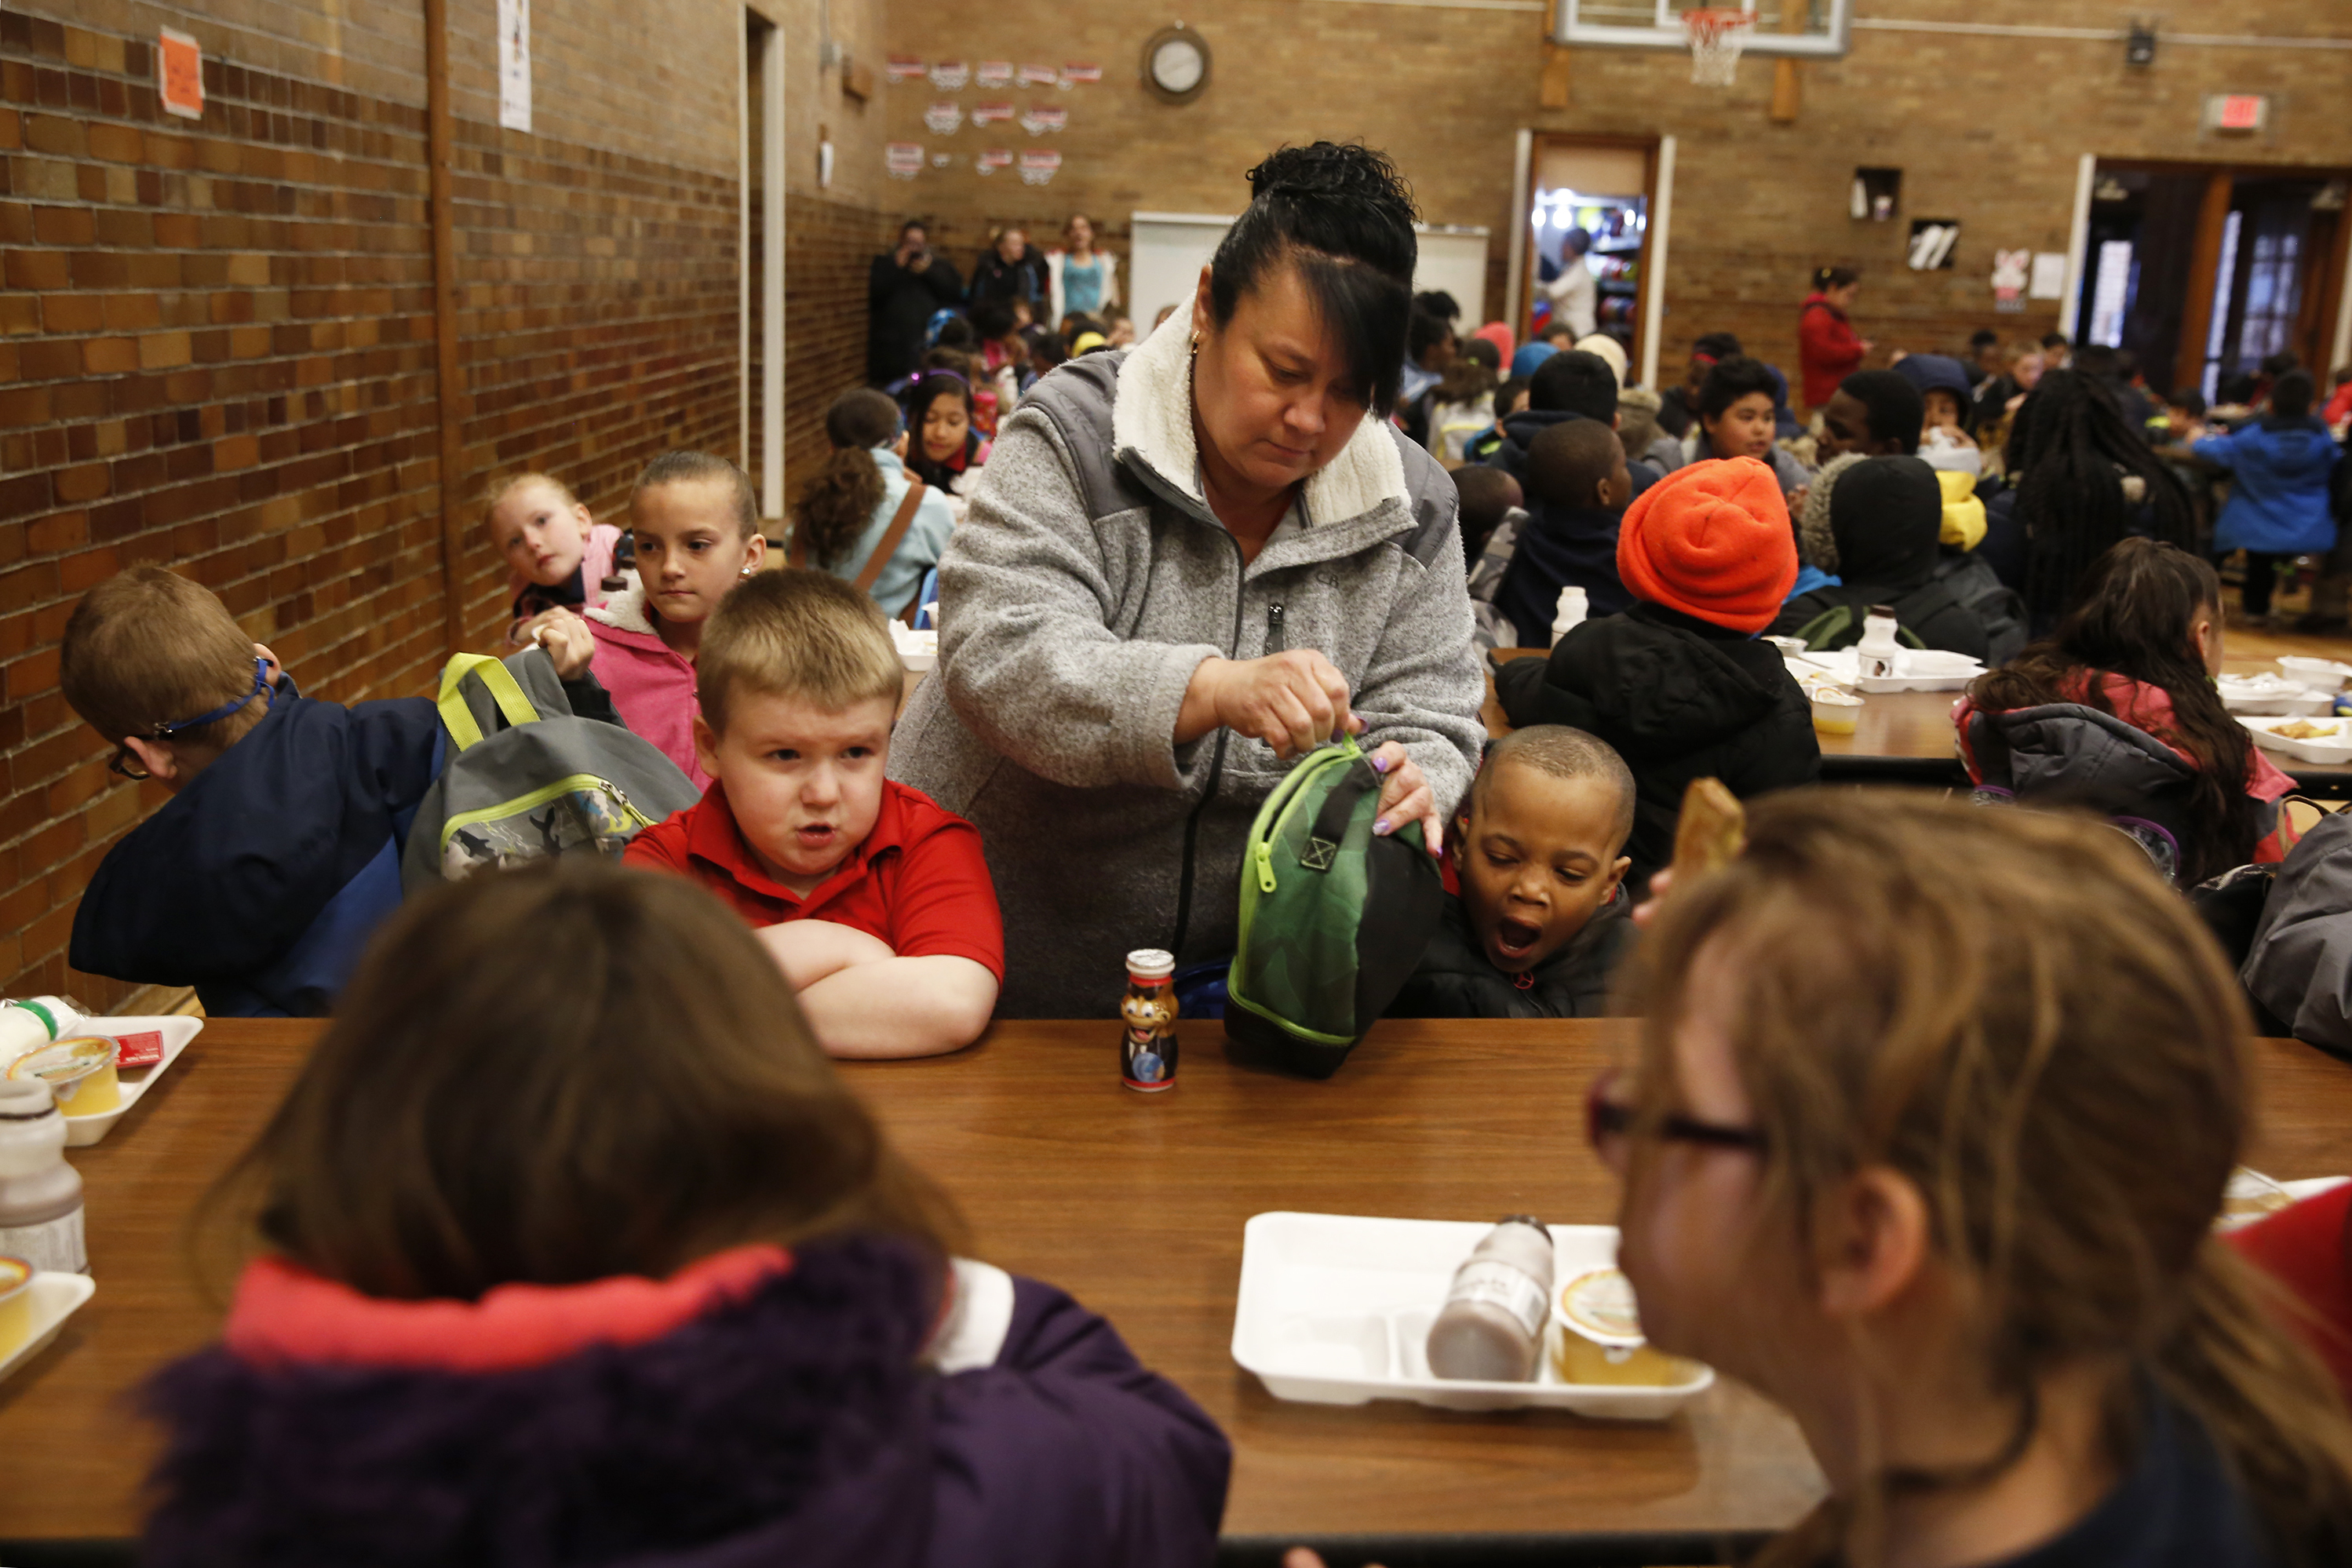 Cyndy Bulson now volunteers at Stocking, helping monitor kids in the morning, serving breakfast and chaperoning field trips. (Photo by Elissa Nadworny/NPR)